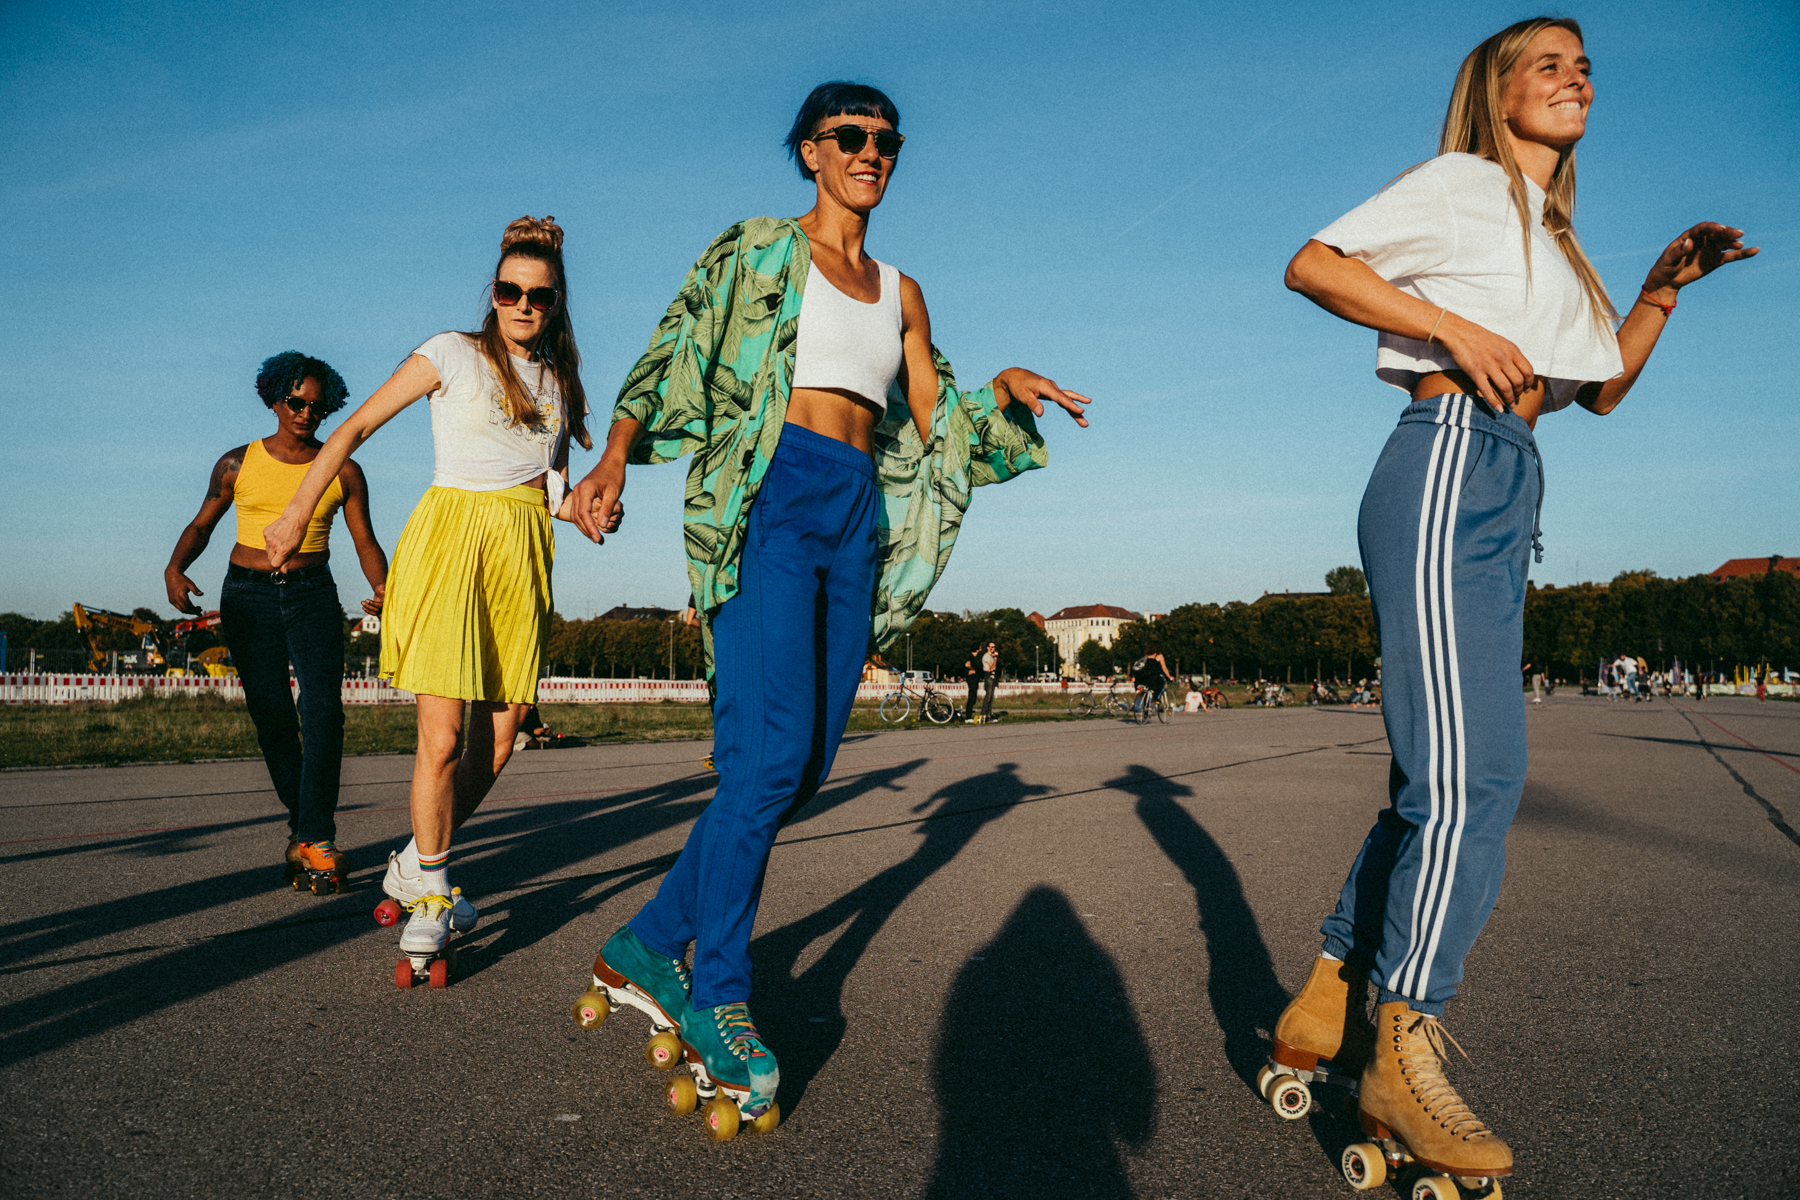 Gtm Rollerdancesquad Skate Theresienwiese Ag 19